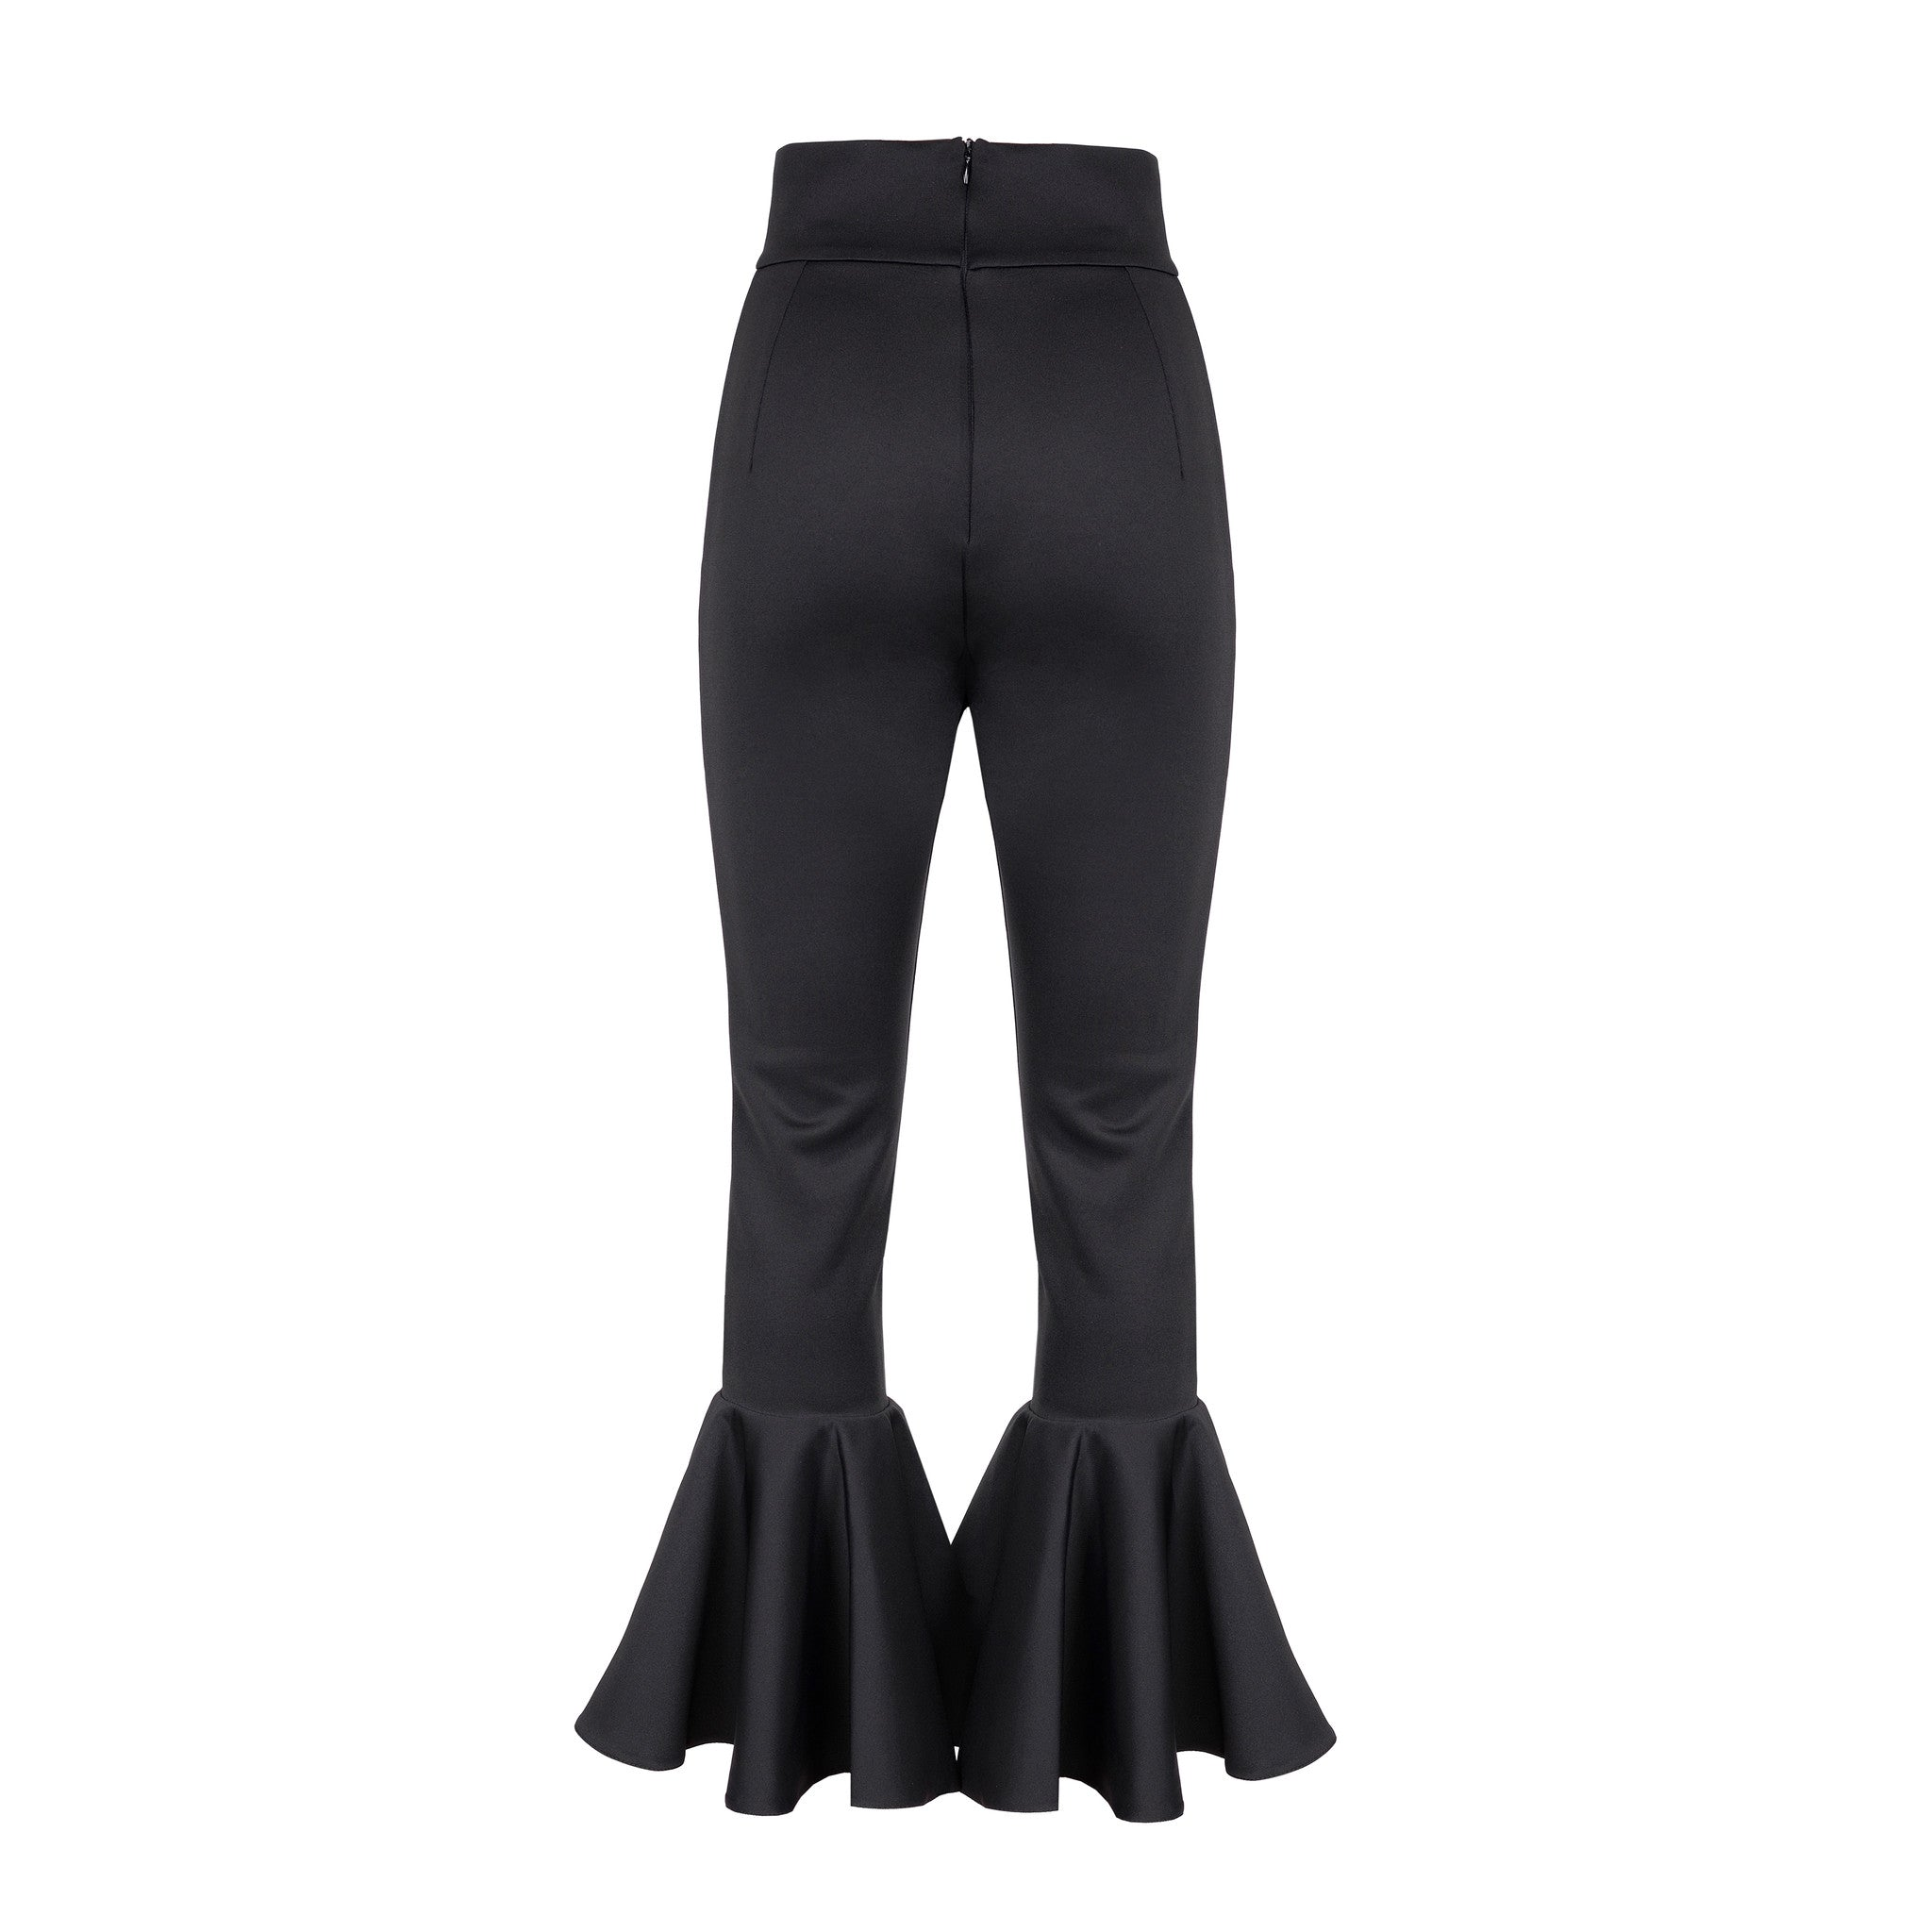 CIRCULAIRE TROUSERS